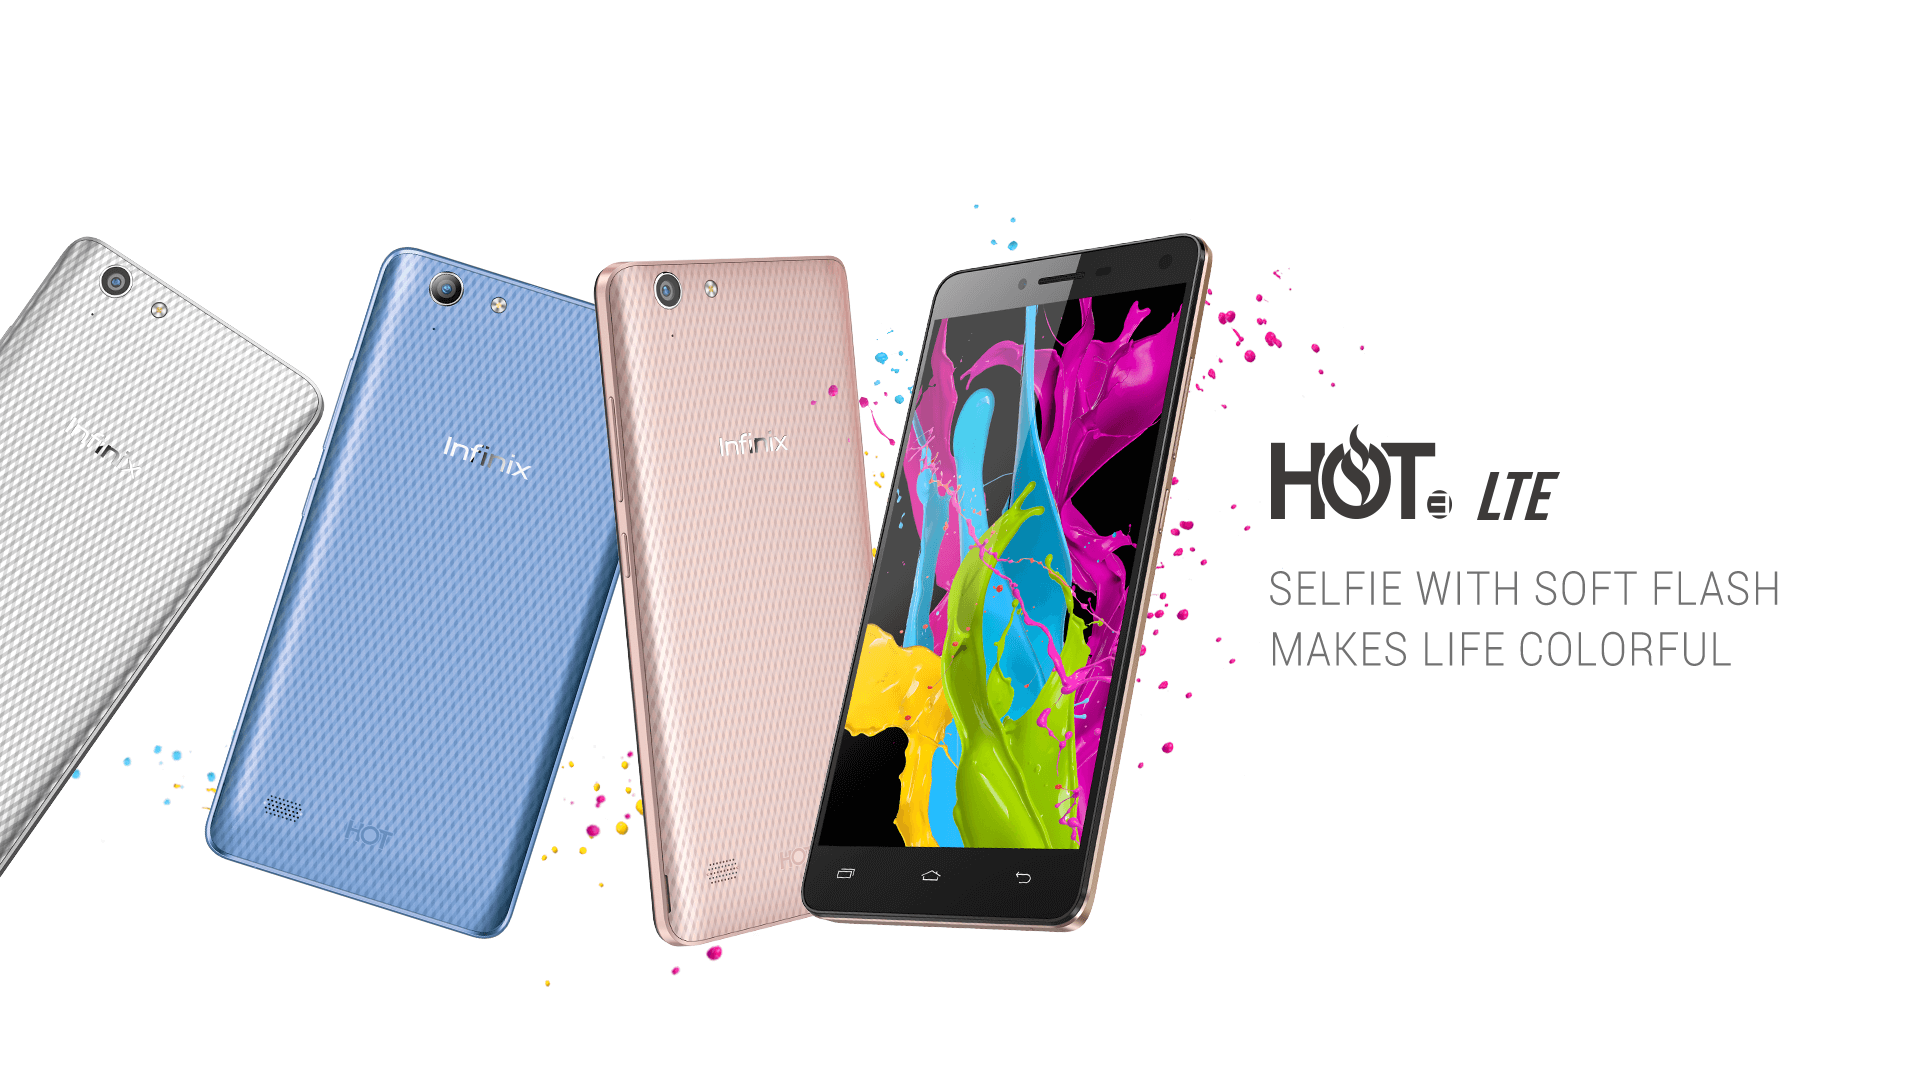 infinix hot 3 lte